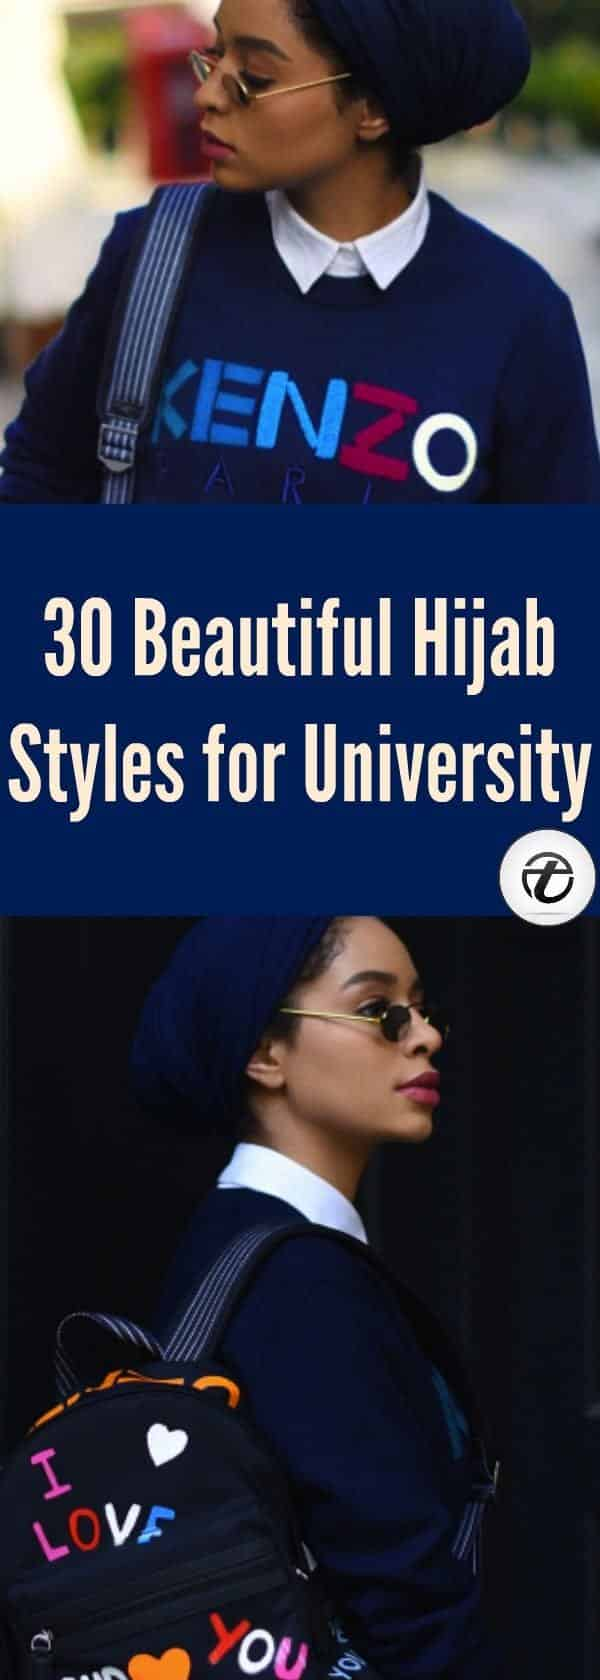 how to wear hijab to university